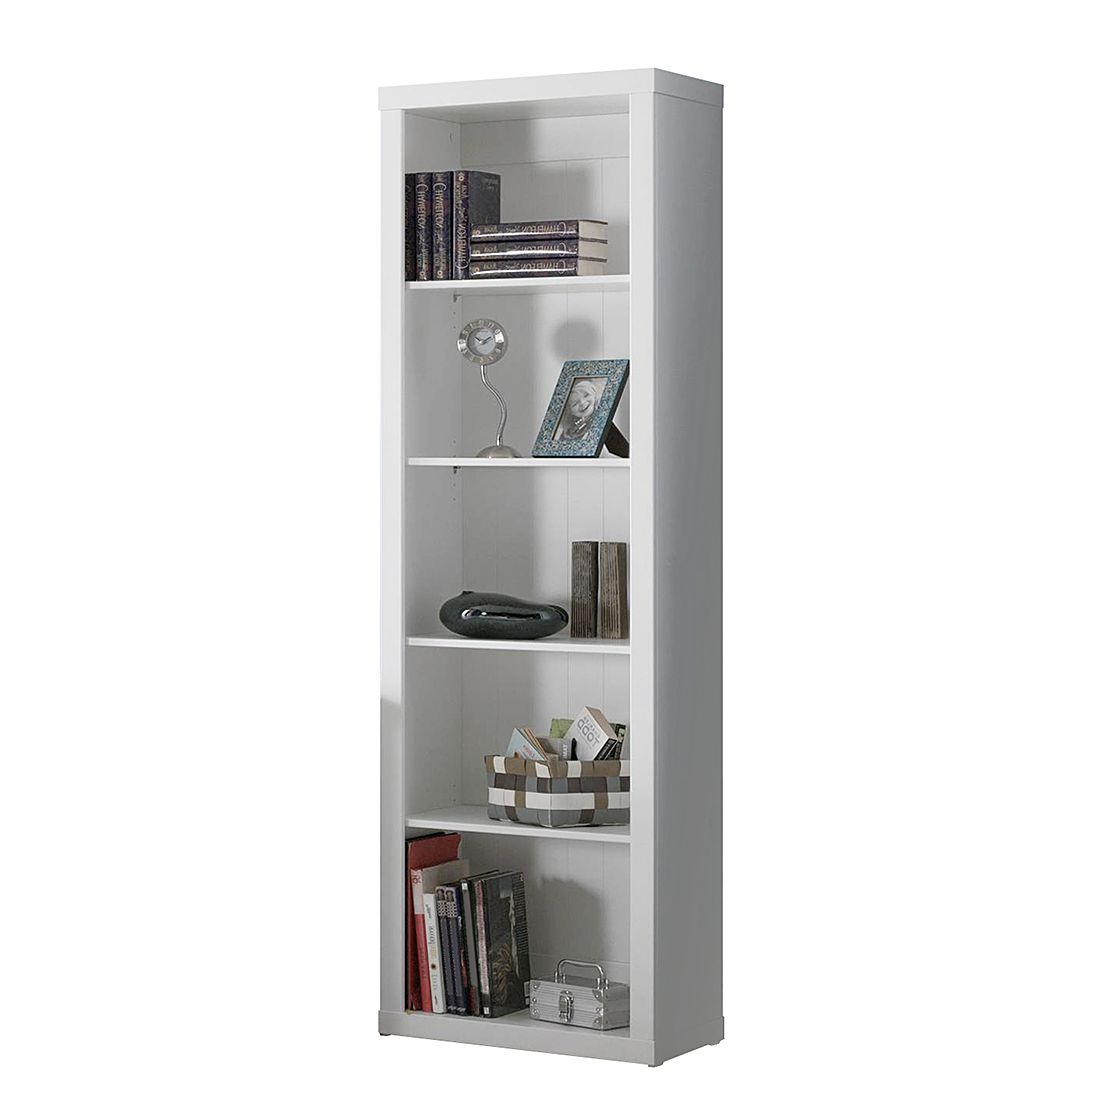 home24 Standregal Robin | Wohnzimmer > Regale > Einzelregale | Weiss | Holz | Vipack